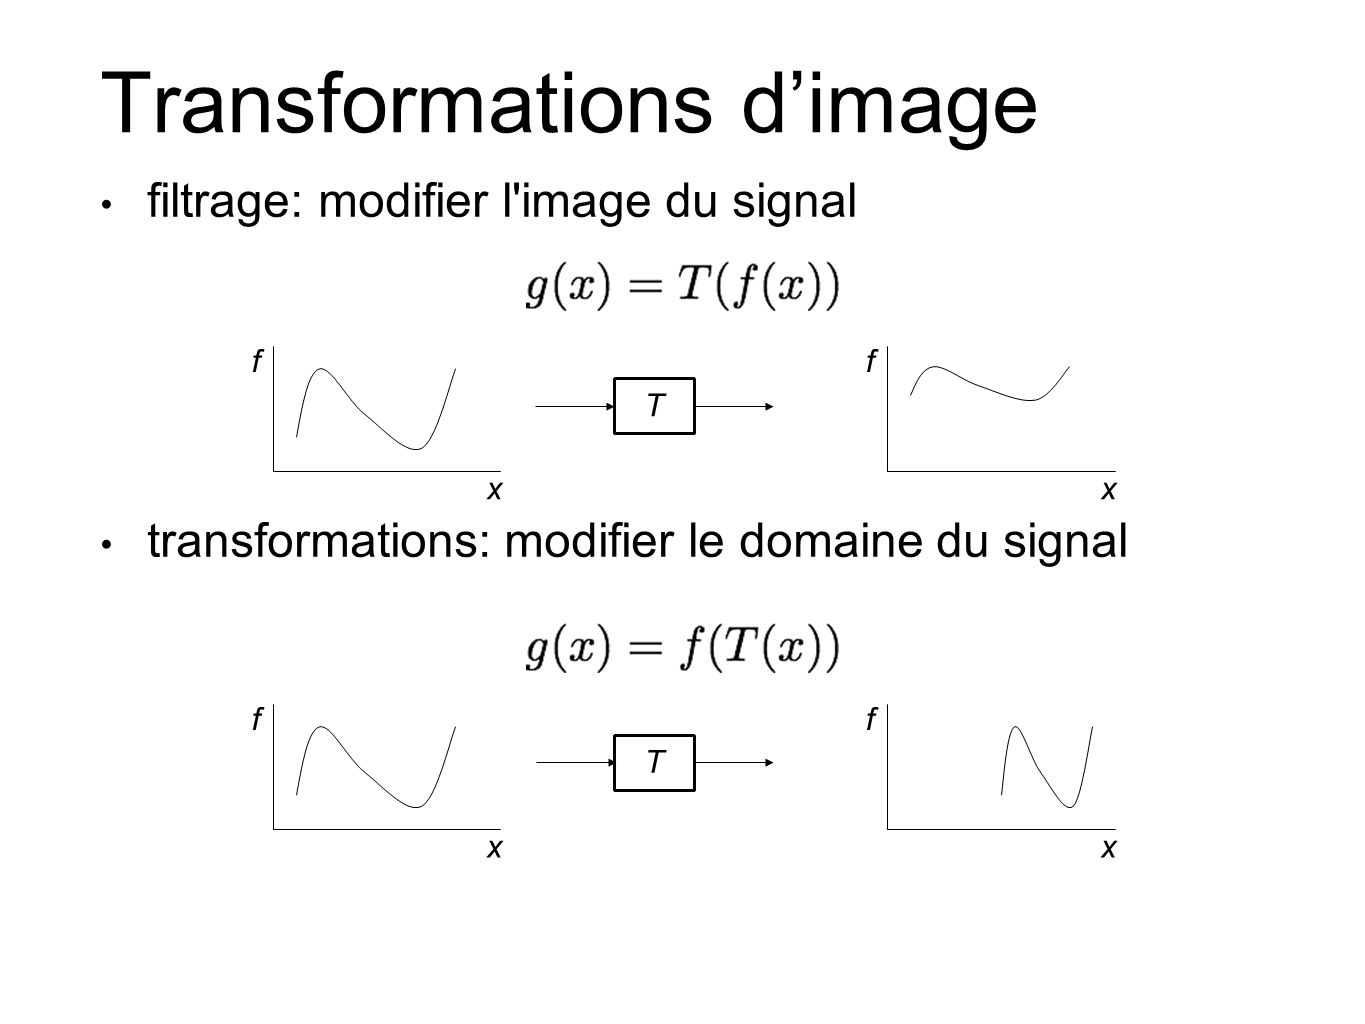 Transformations dimage filtrage: modifier l'image du signal transformations: modifier le domaine du signal f x T f x f x T f x